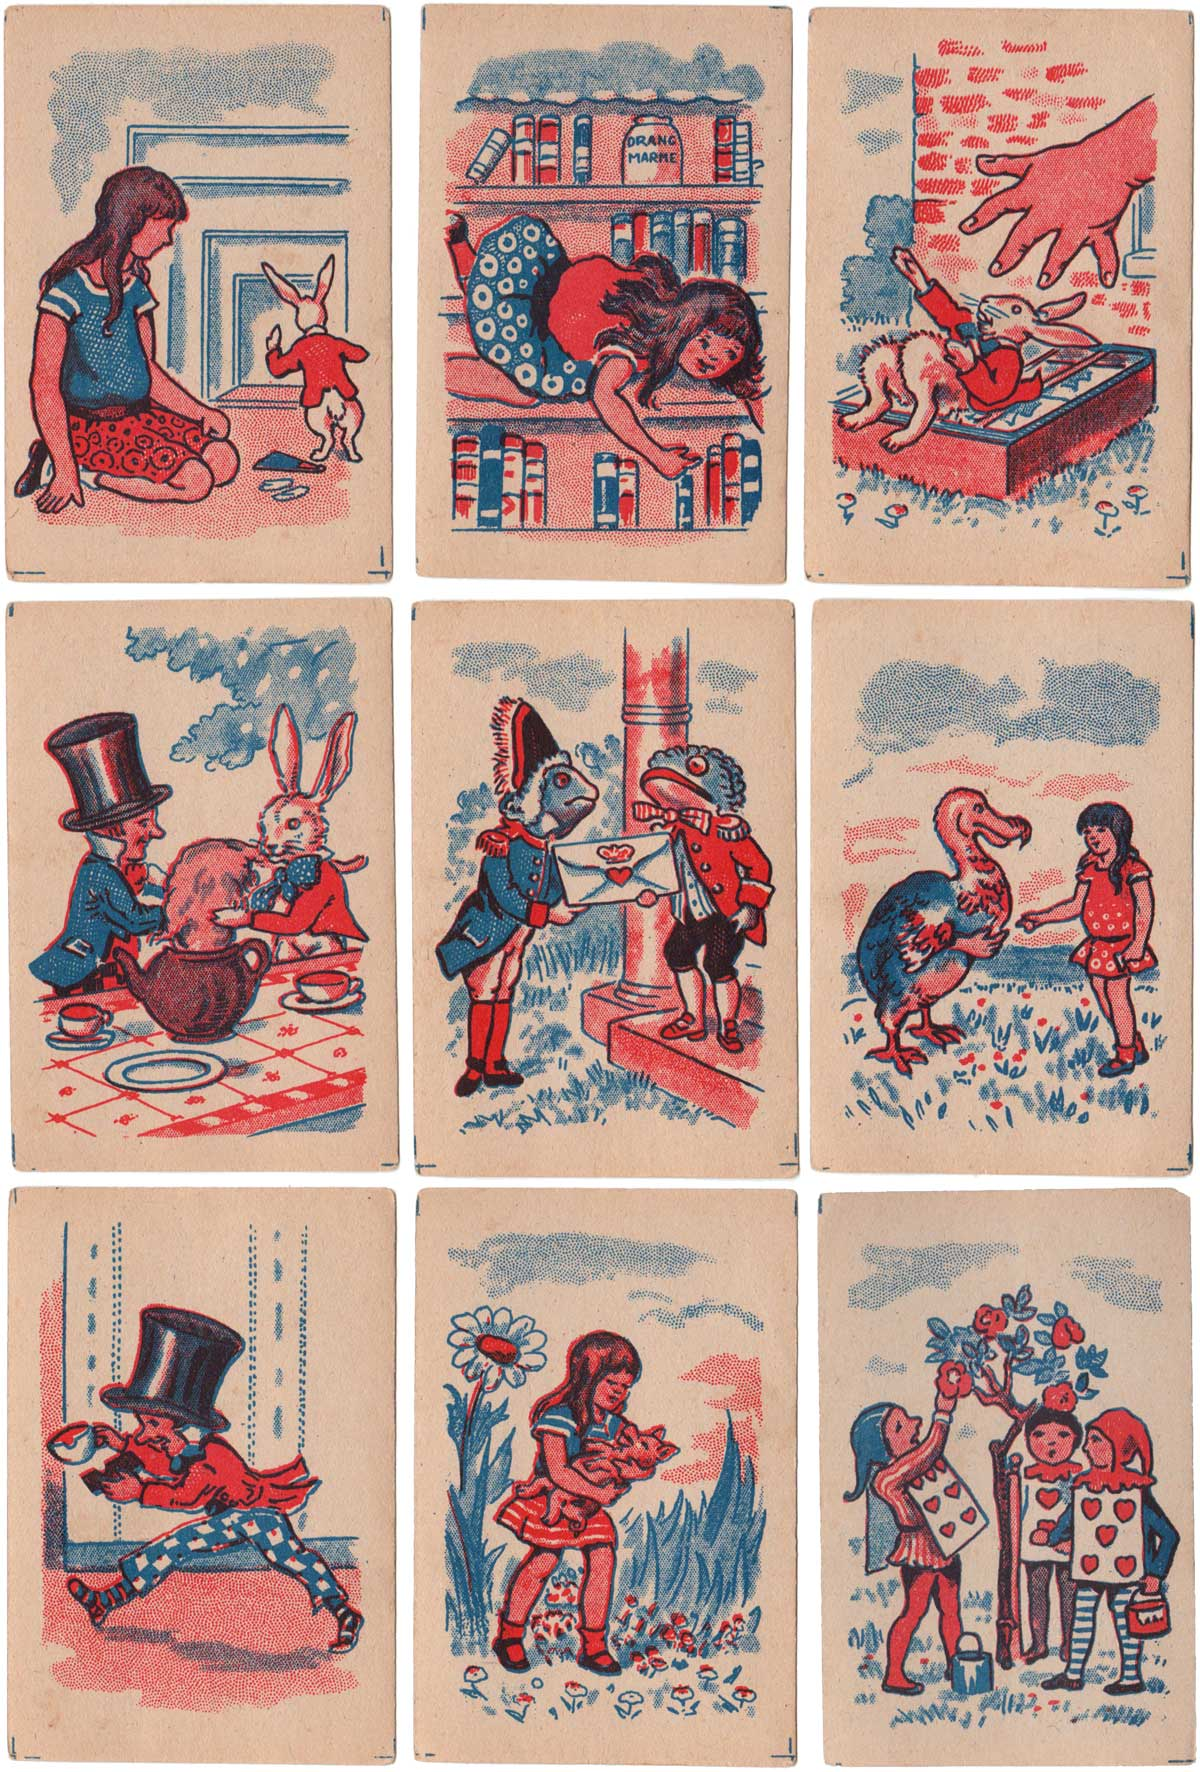 """Alice in Wonderland """"Snap"""" 1 penny game from 1920s or 30s"""